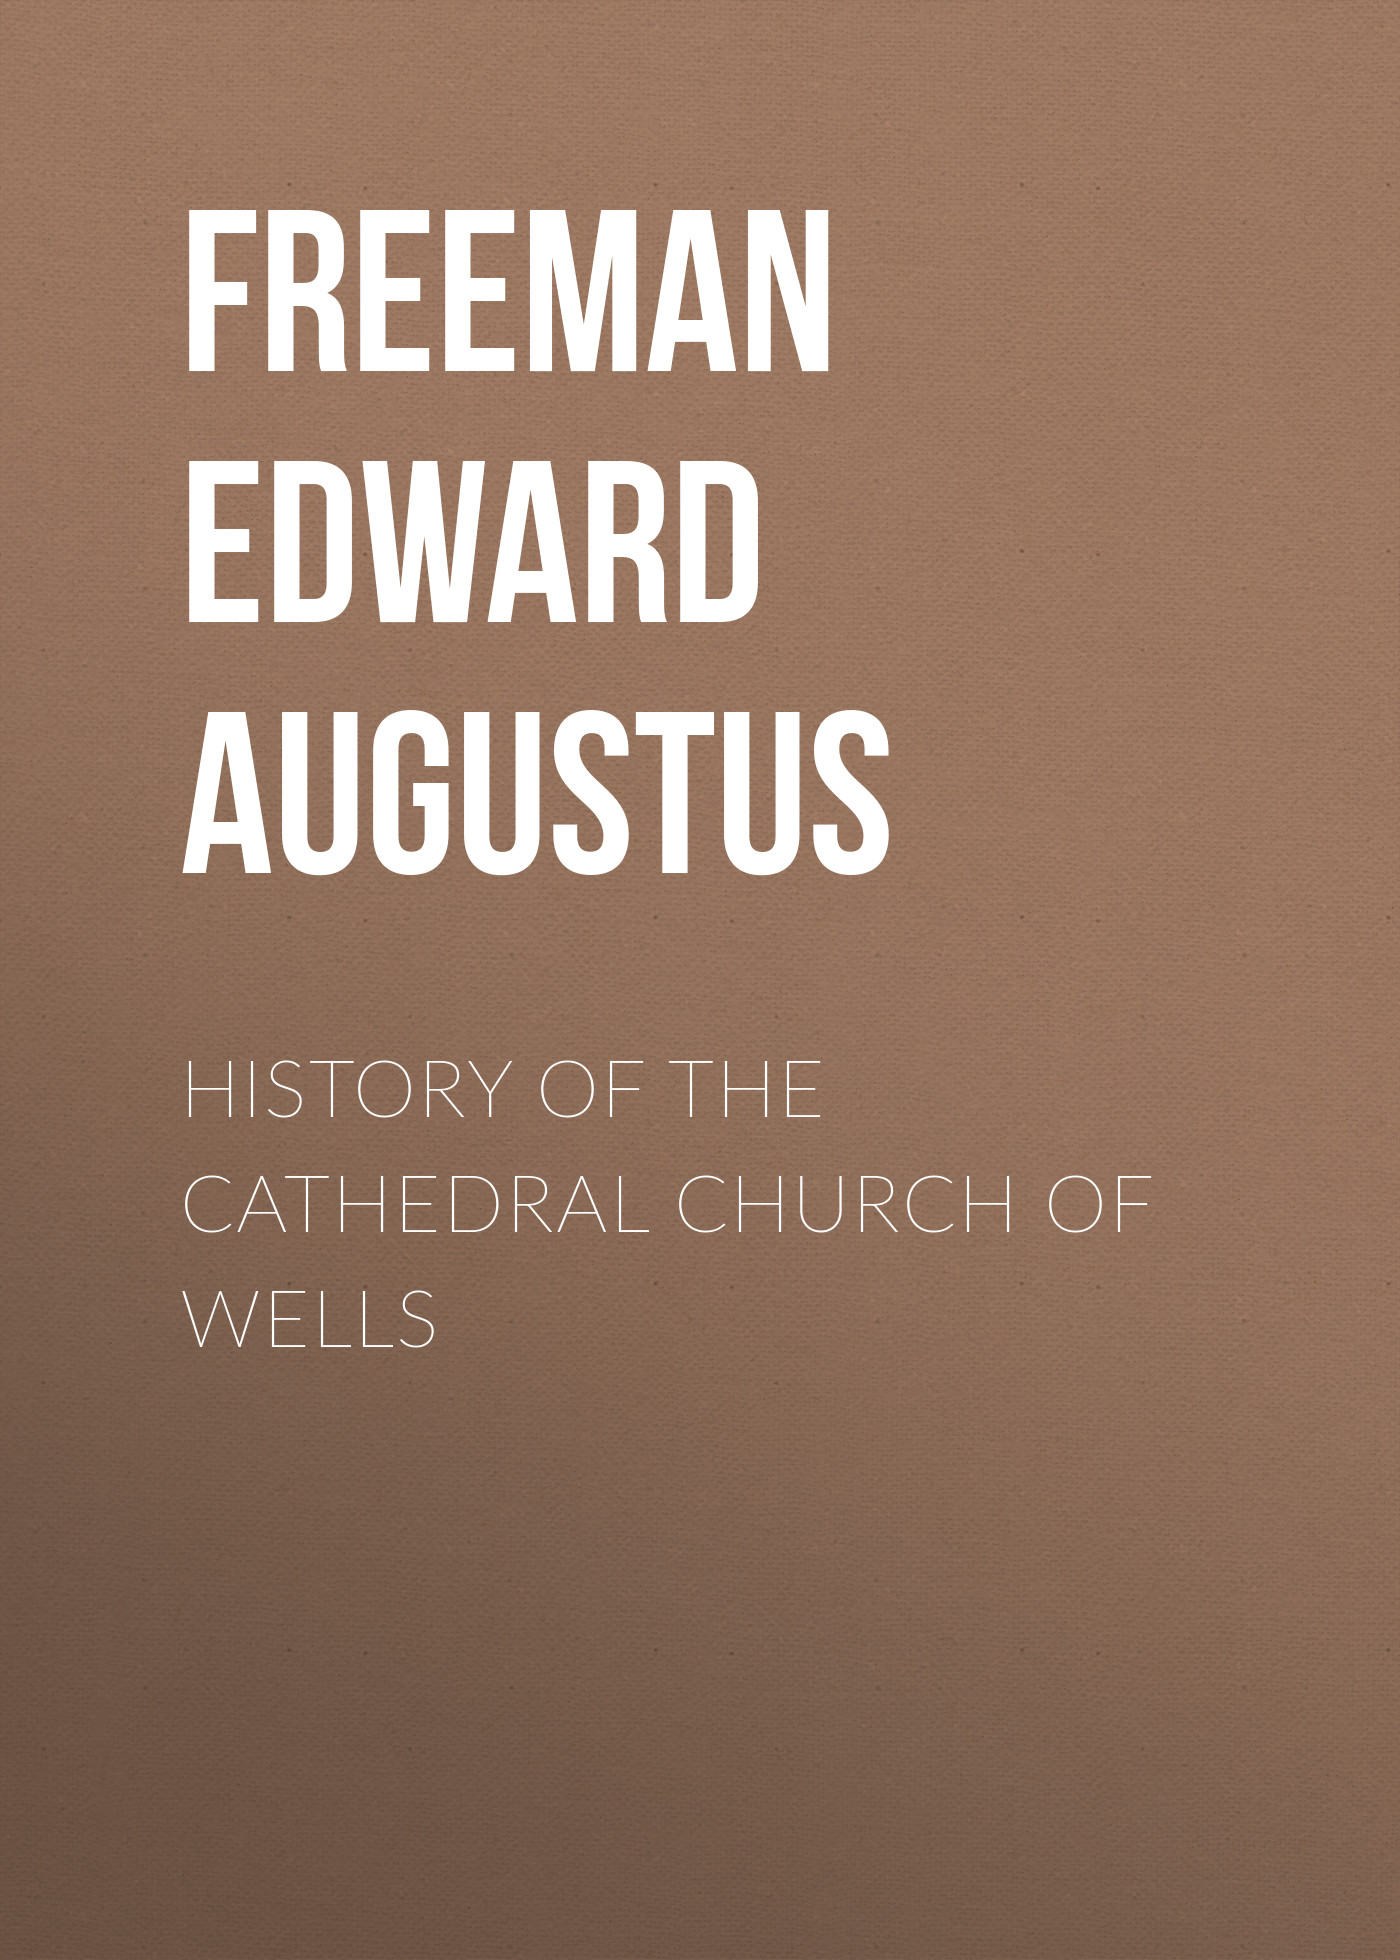 Freeman Edward Augustus History of the Cathedral Church of Wells